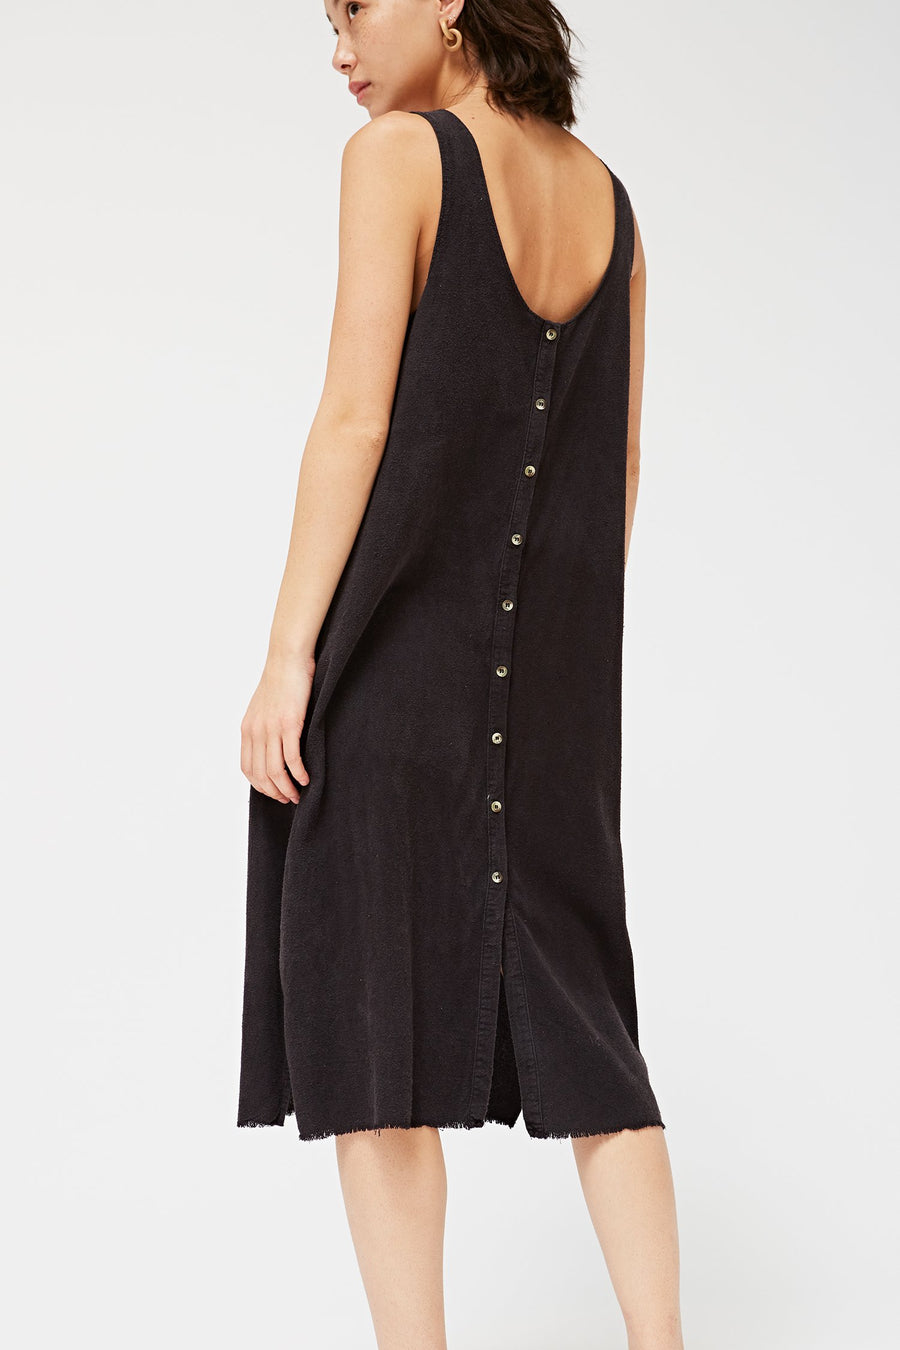 Lacausa Reversible Dress in Tar